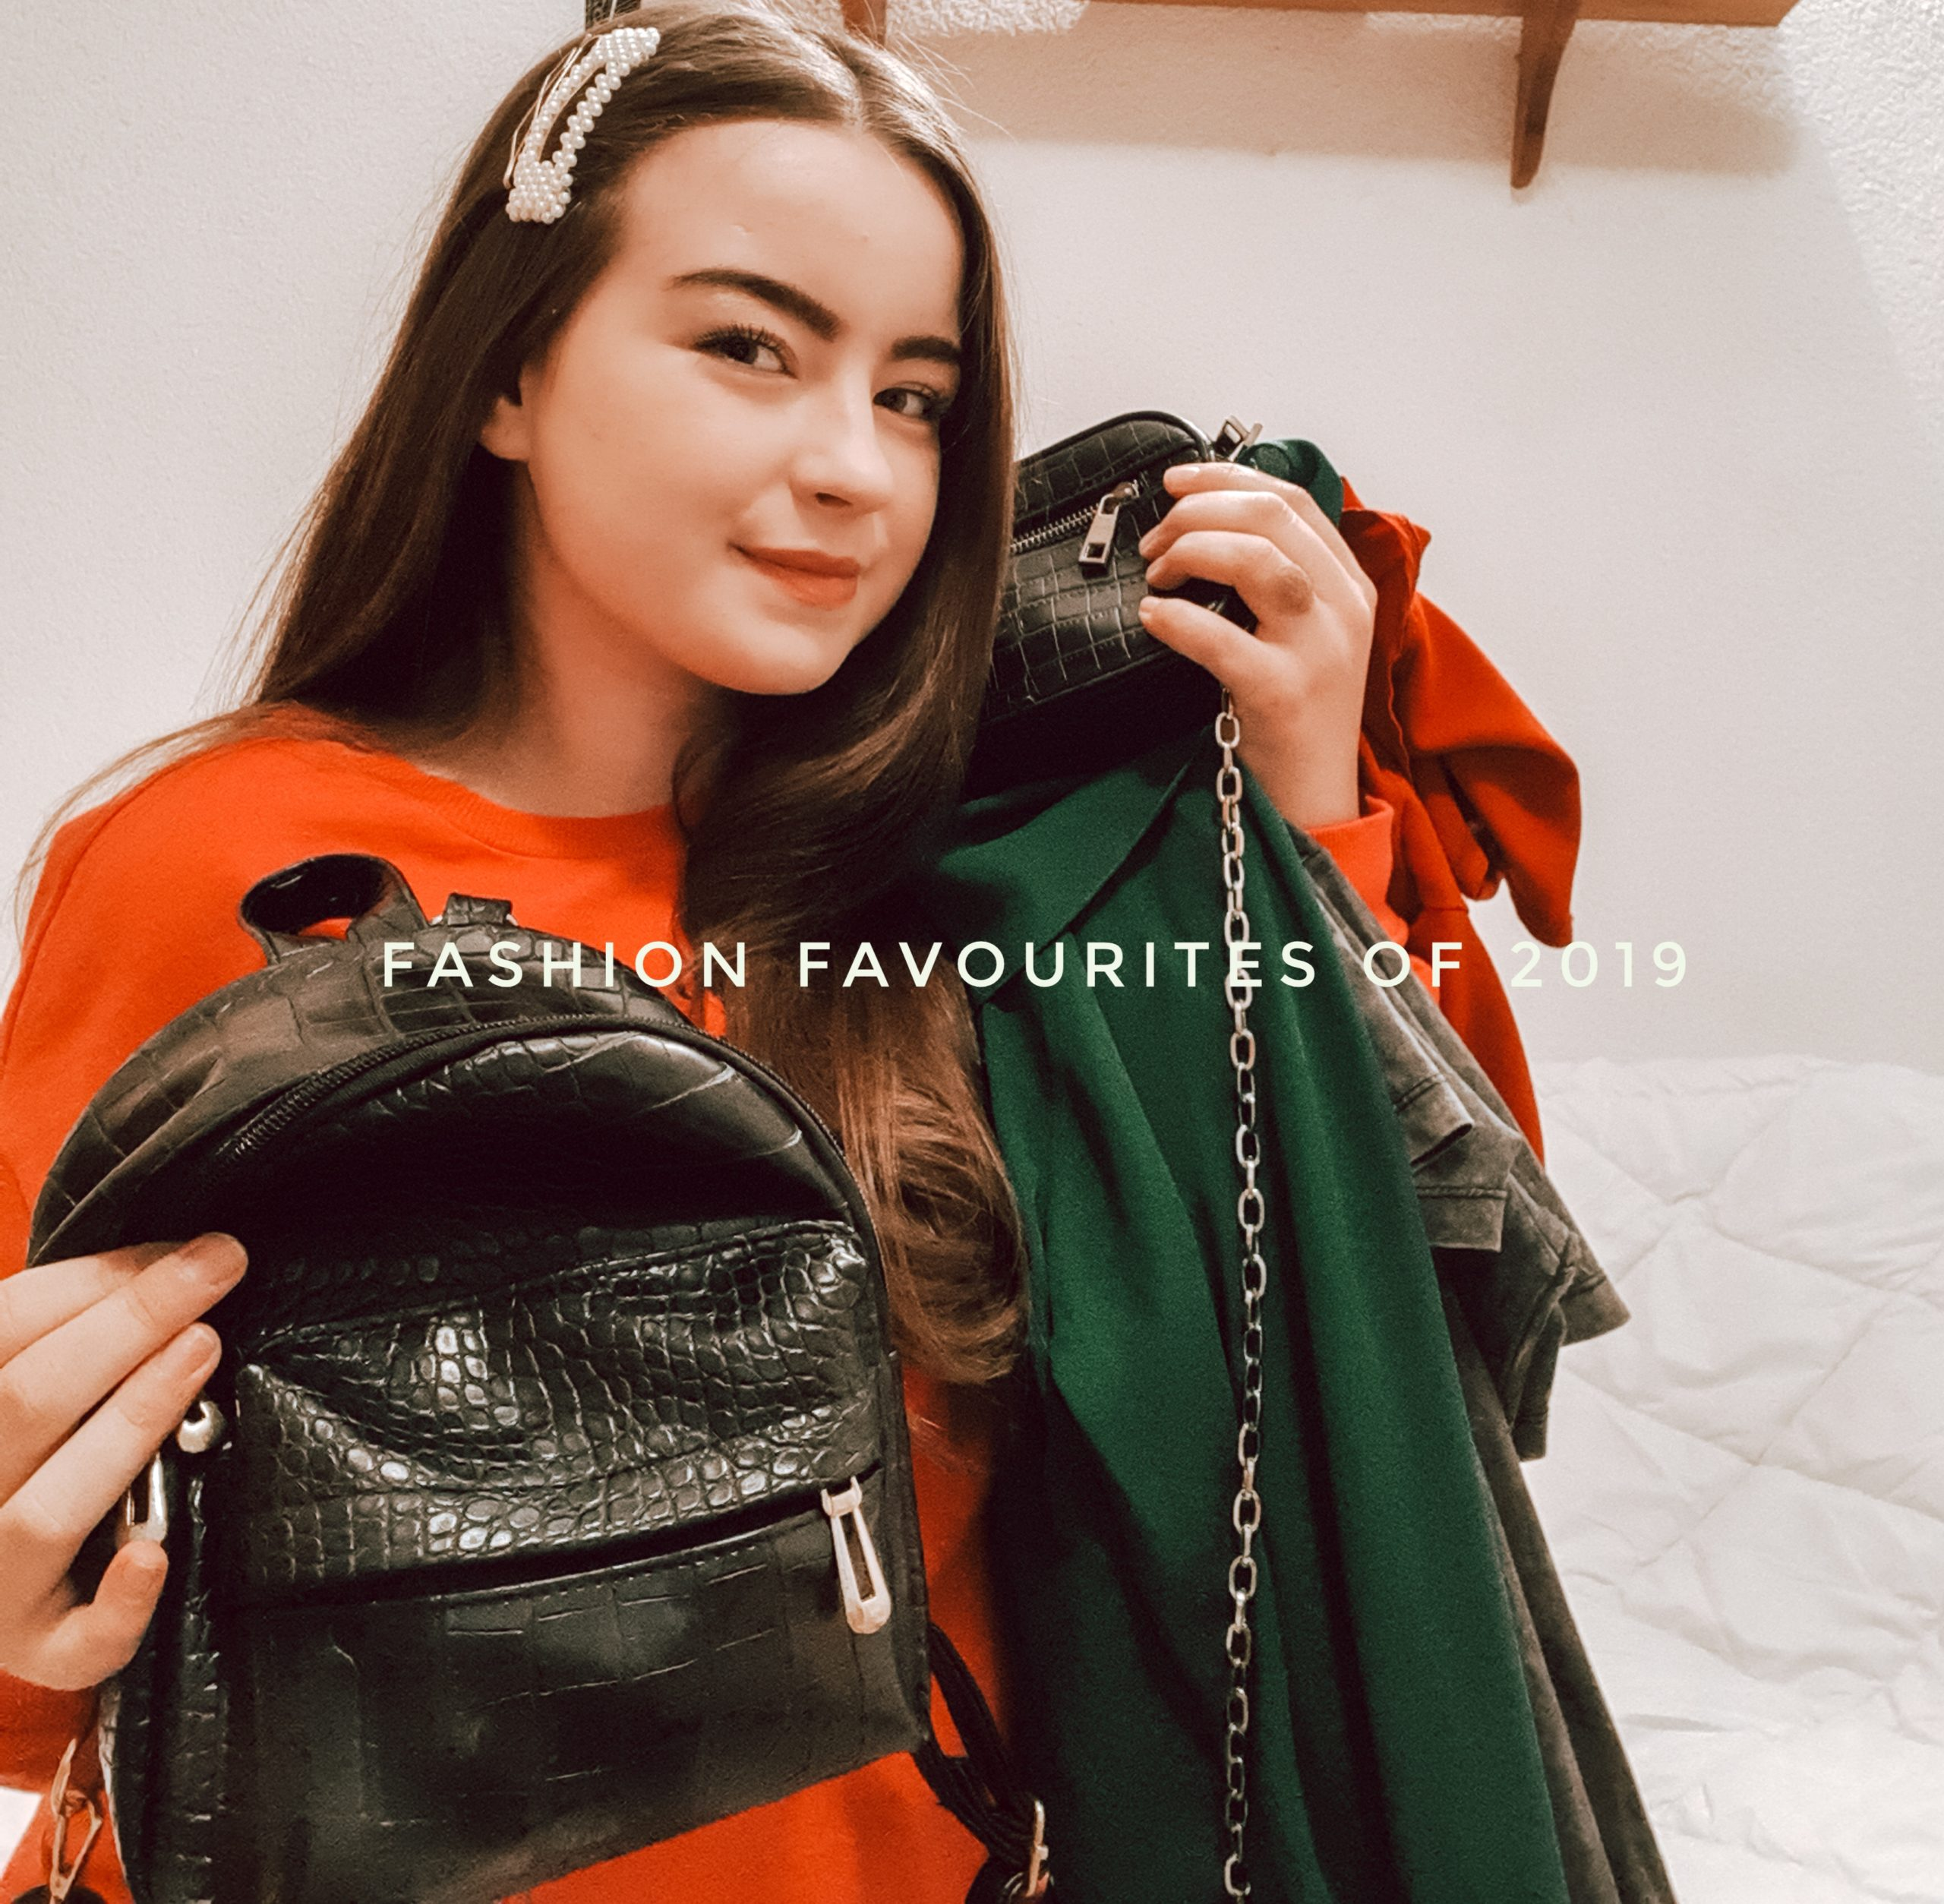 Fashion Favourites of 2019